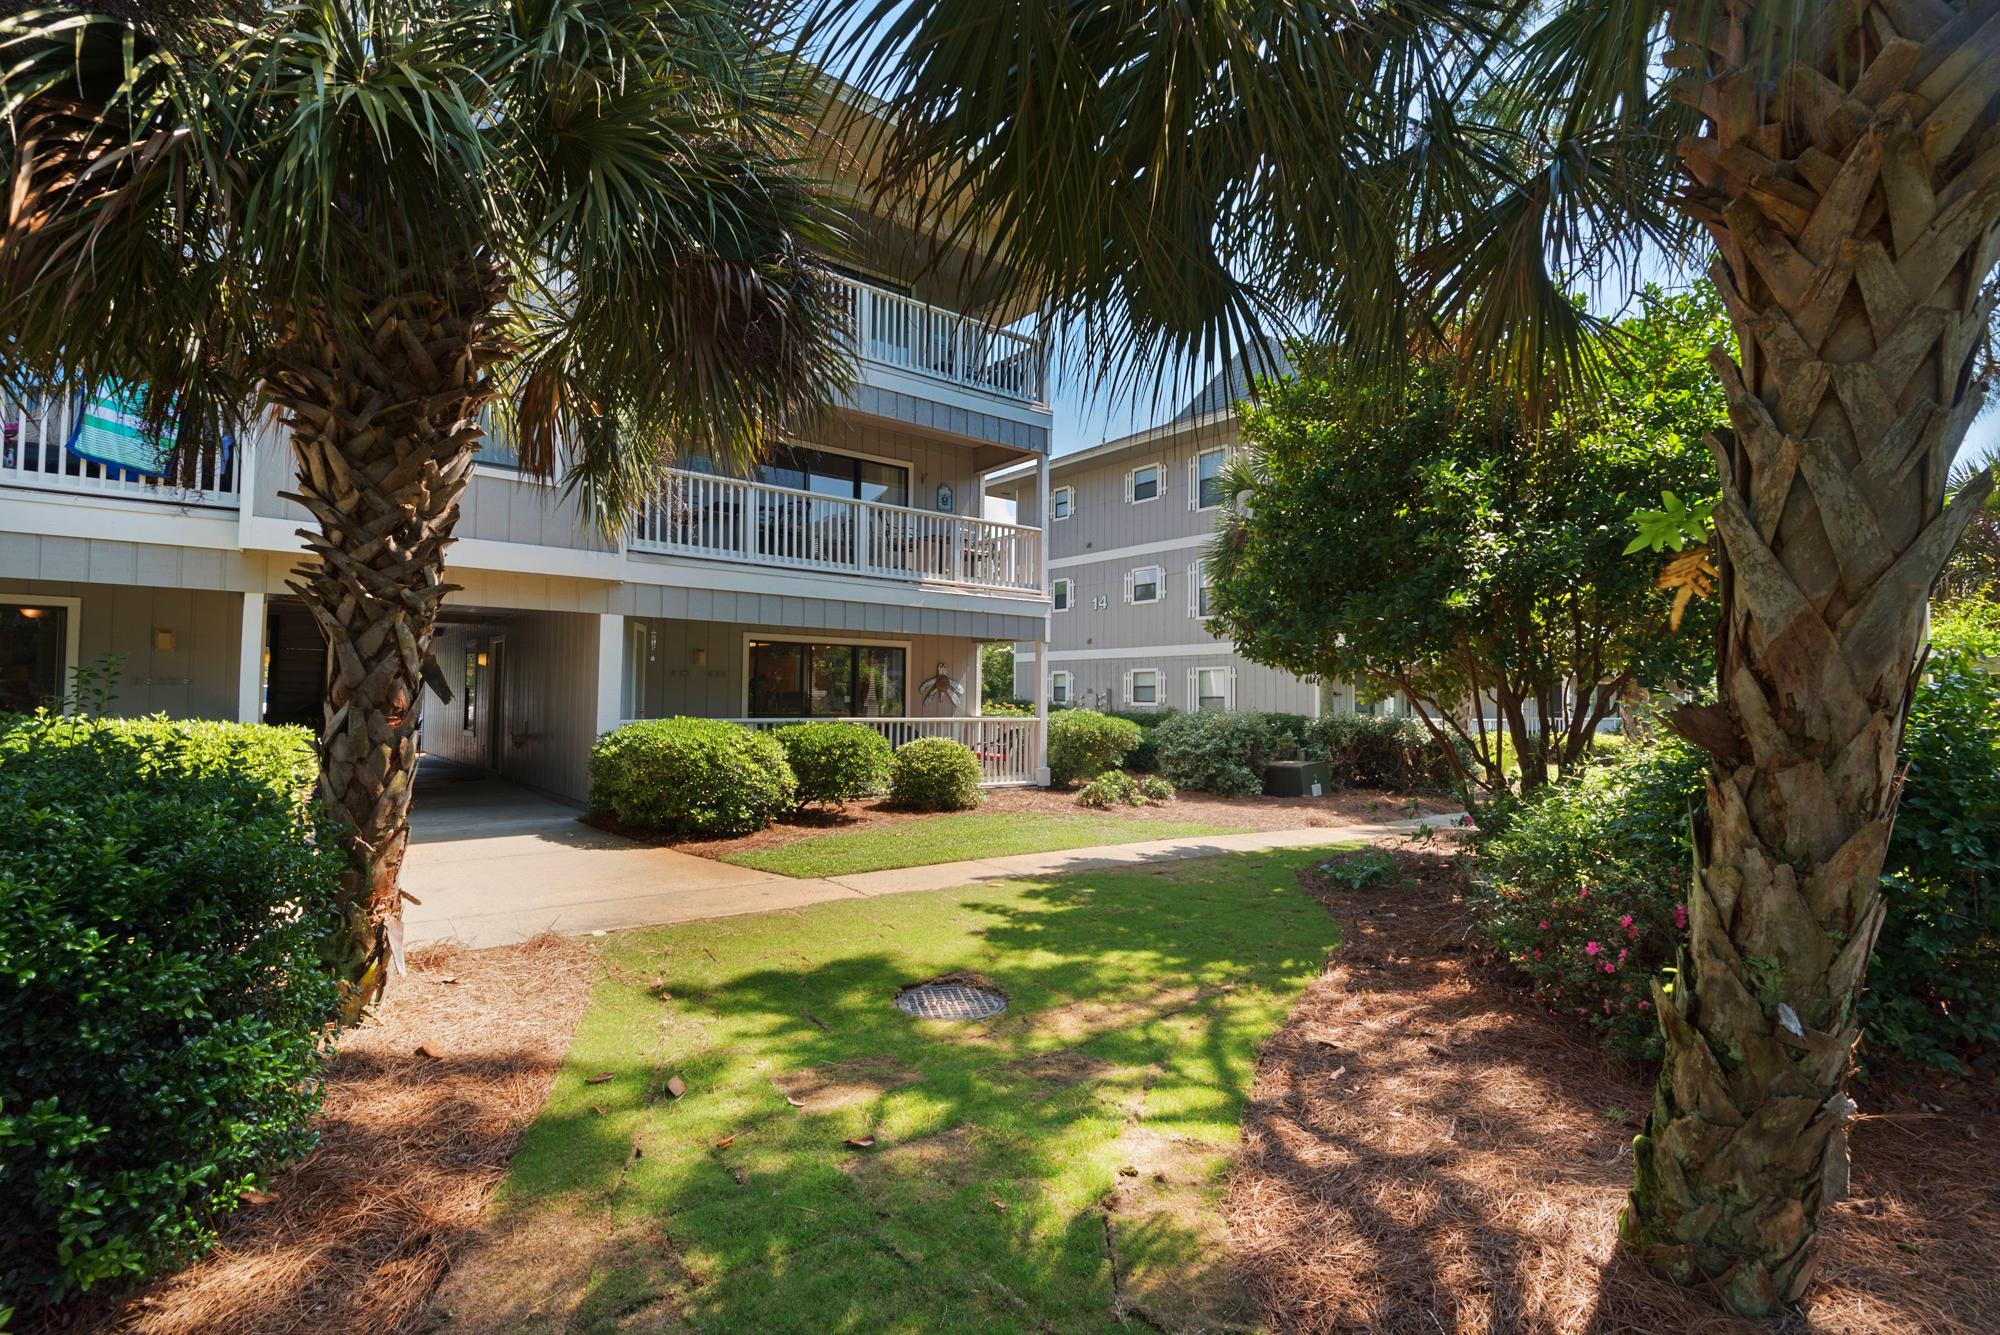 Photo of home for sale at 3799 County Hwy 30a, Santa Rosa Beach FL